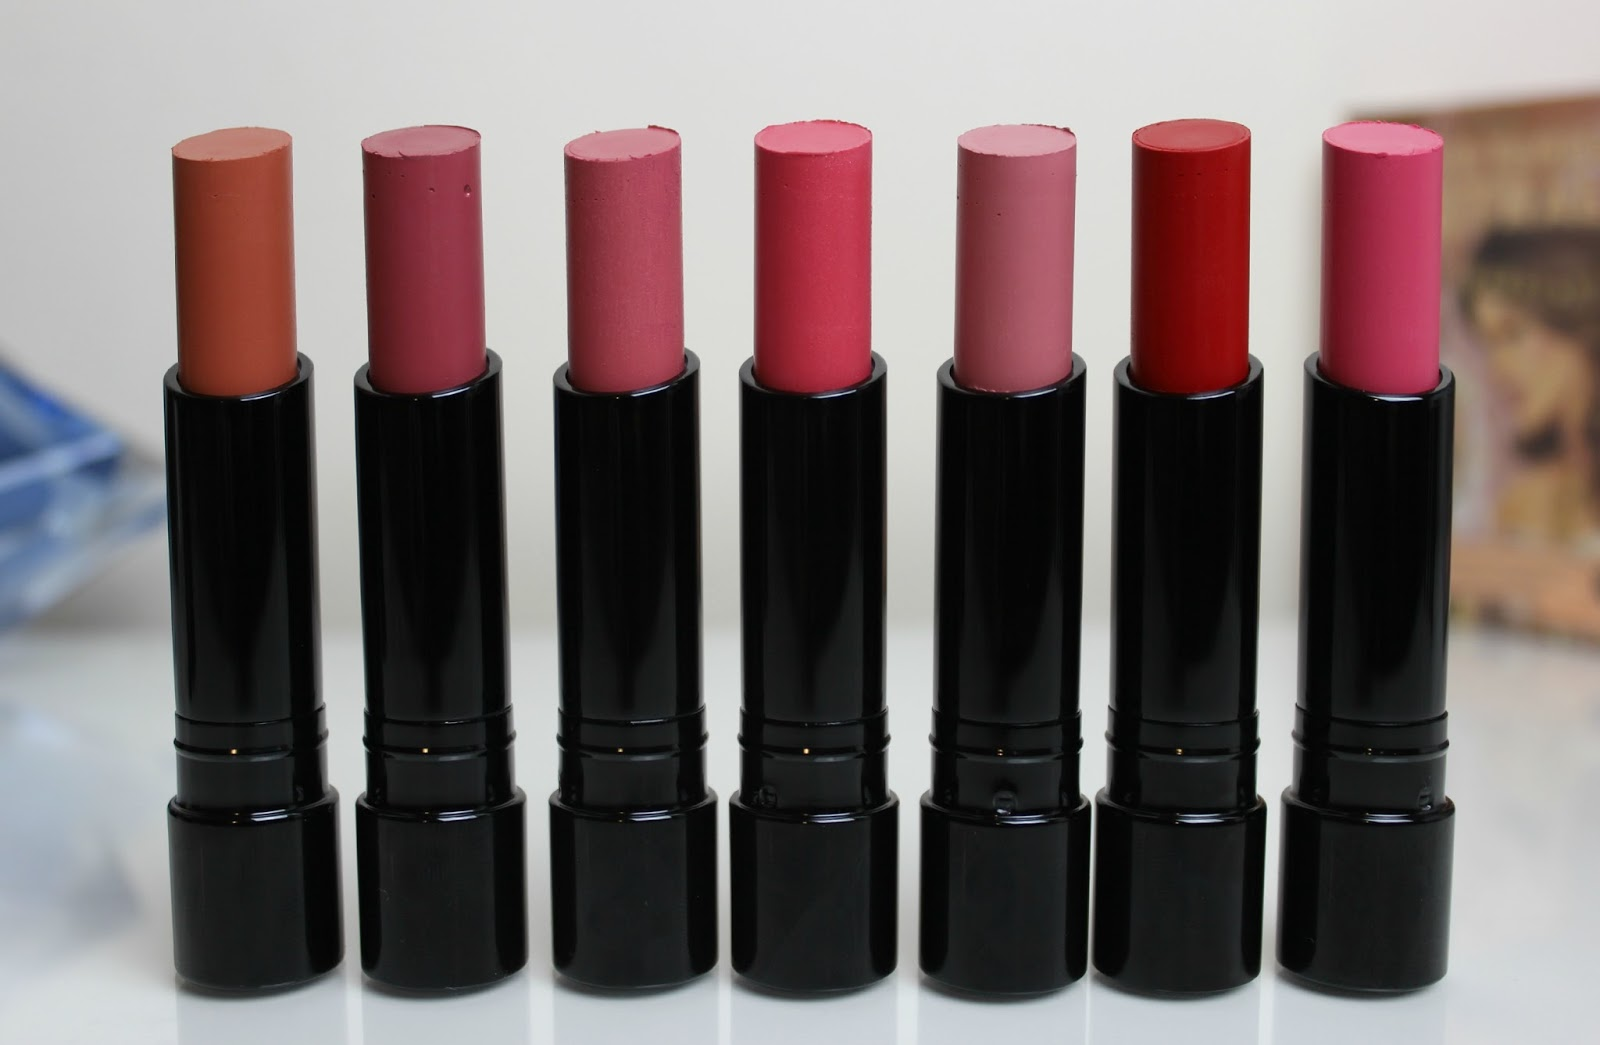 A picture of Bobbi Brown Sheer Color Lipsticks